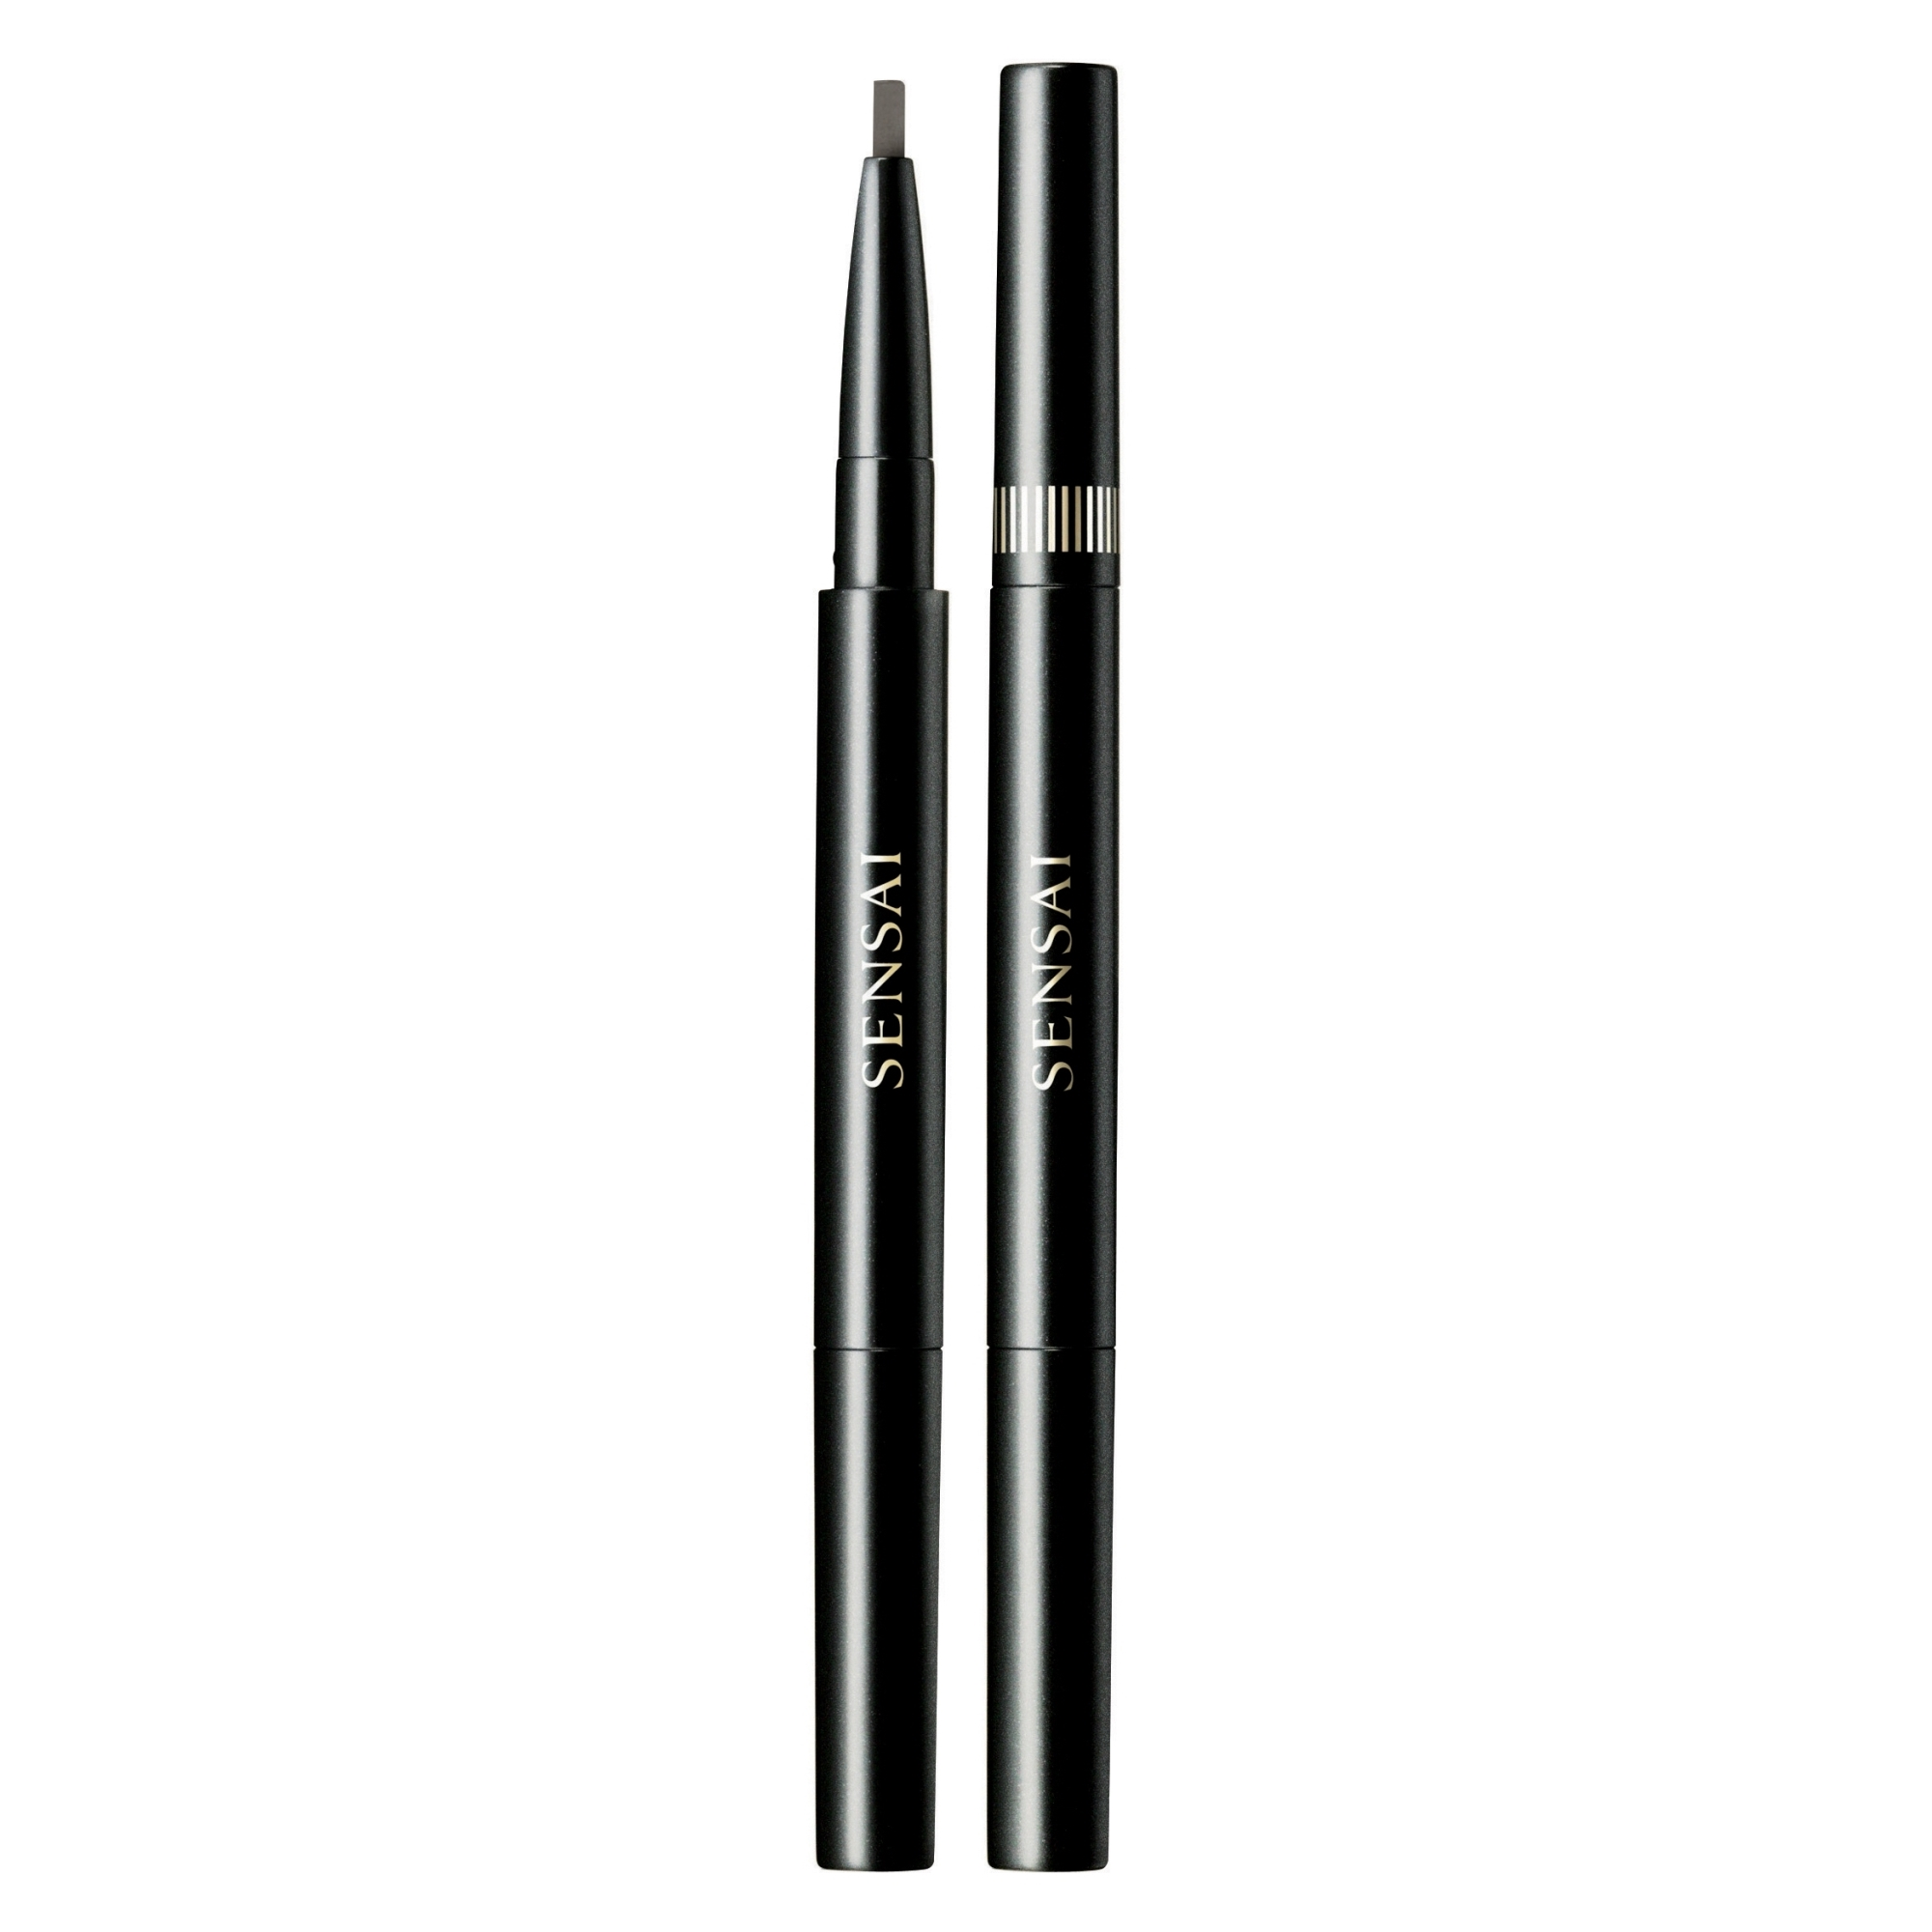 Eyebrow Pencil 01 Greyish Brown